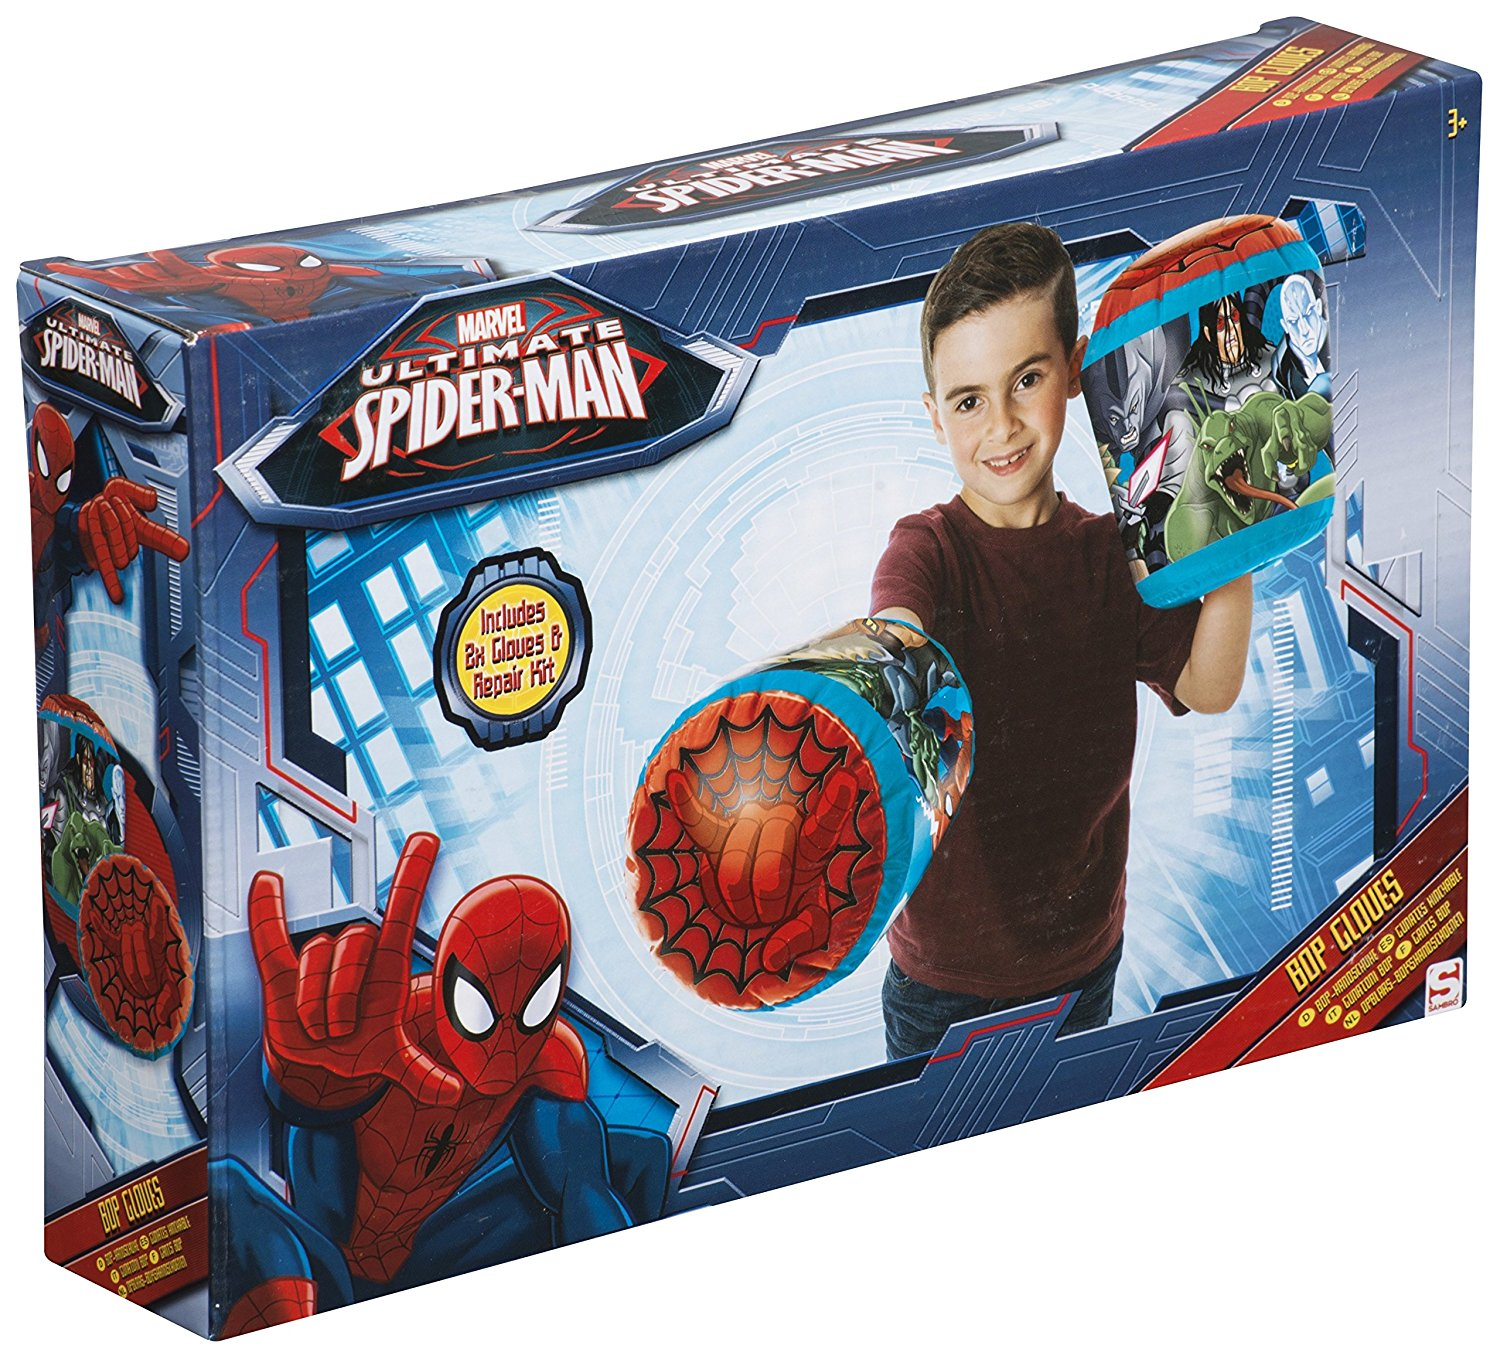 Marvel Ultimate Spiderman Bop Gloves Kids Toy Stocking ...